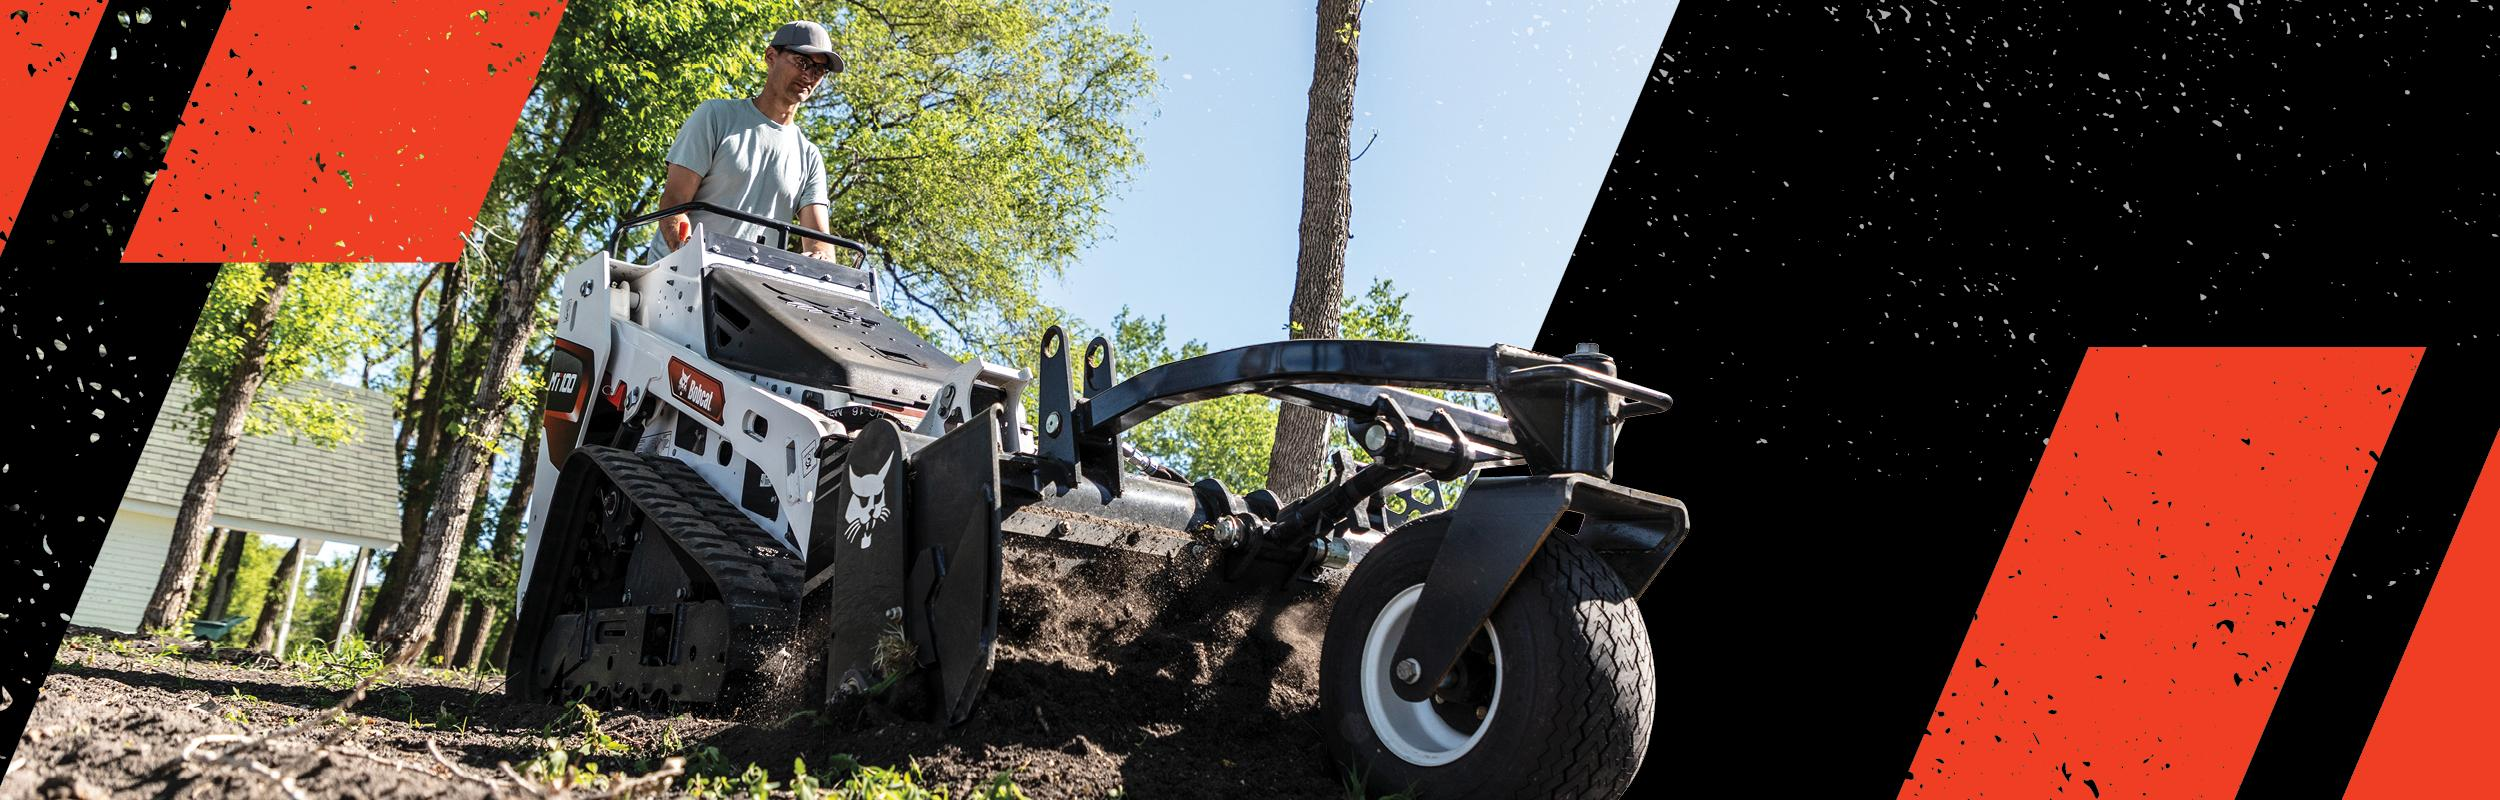 Operator Using A Bobcat MT100 Mini Track Loader With Box Blade Attachment To Move Dirt In Yard